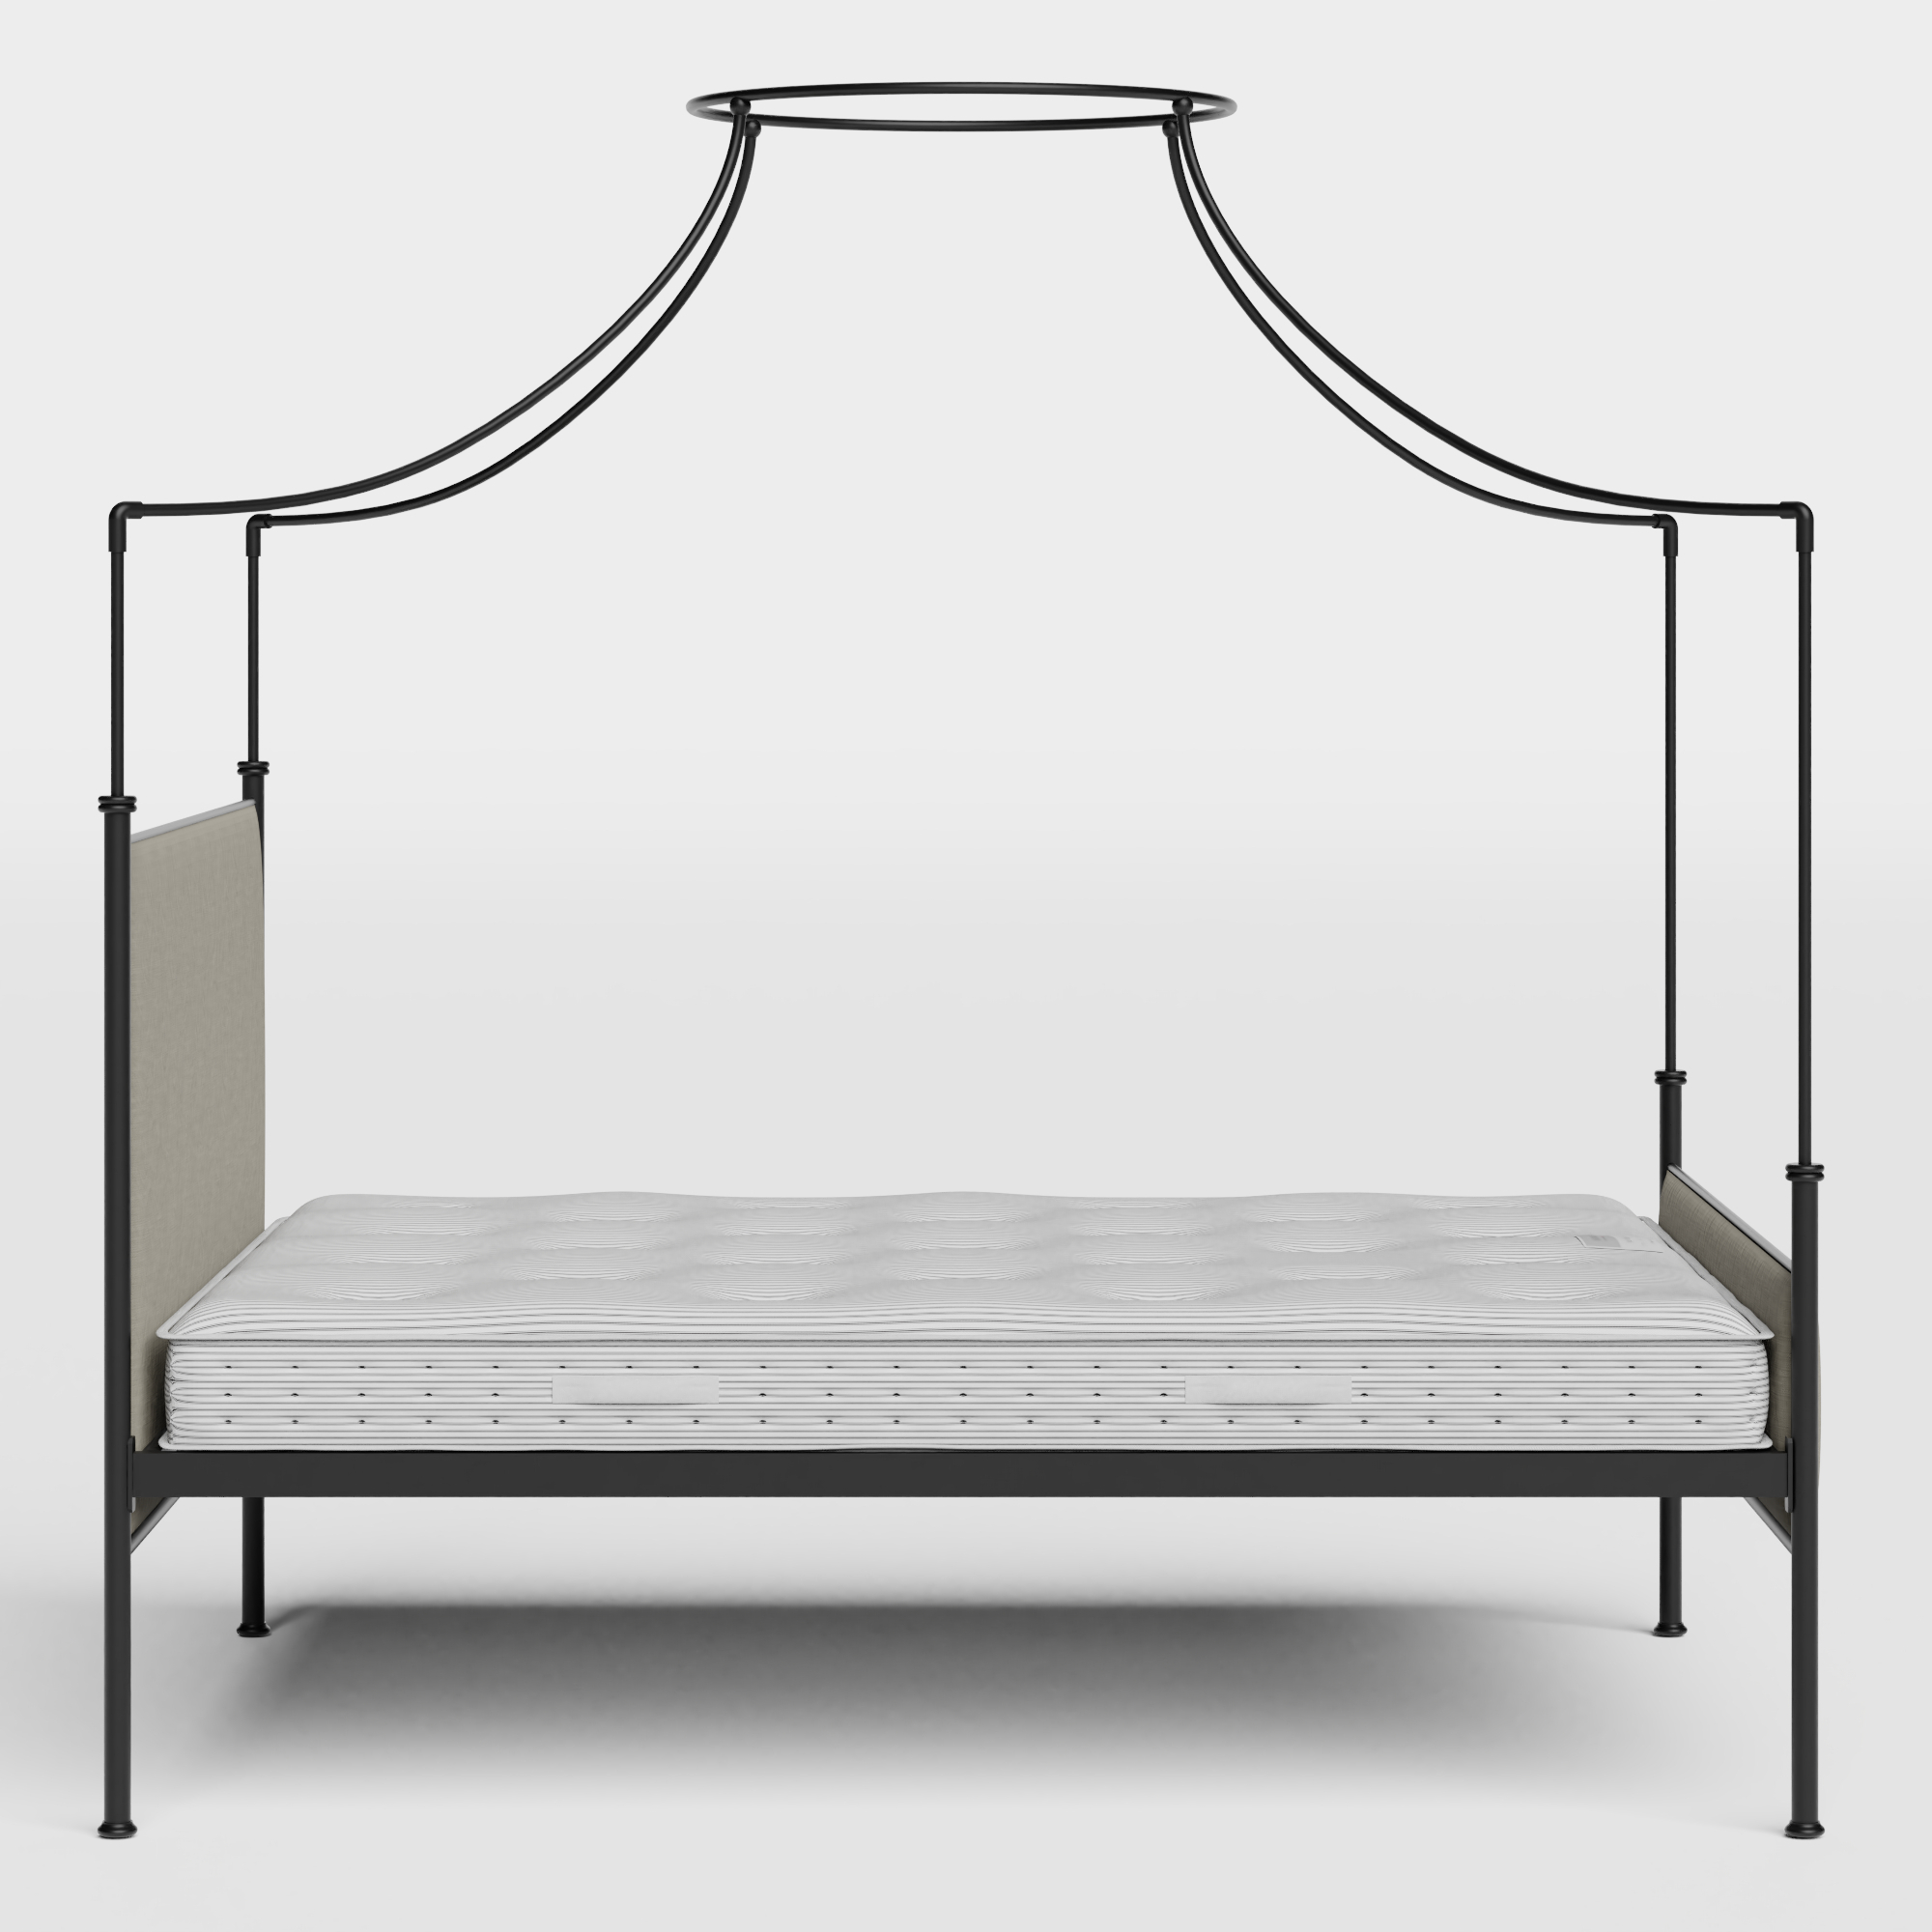 Waterloo iron/metal upholstered bed in black with grey fabric